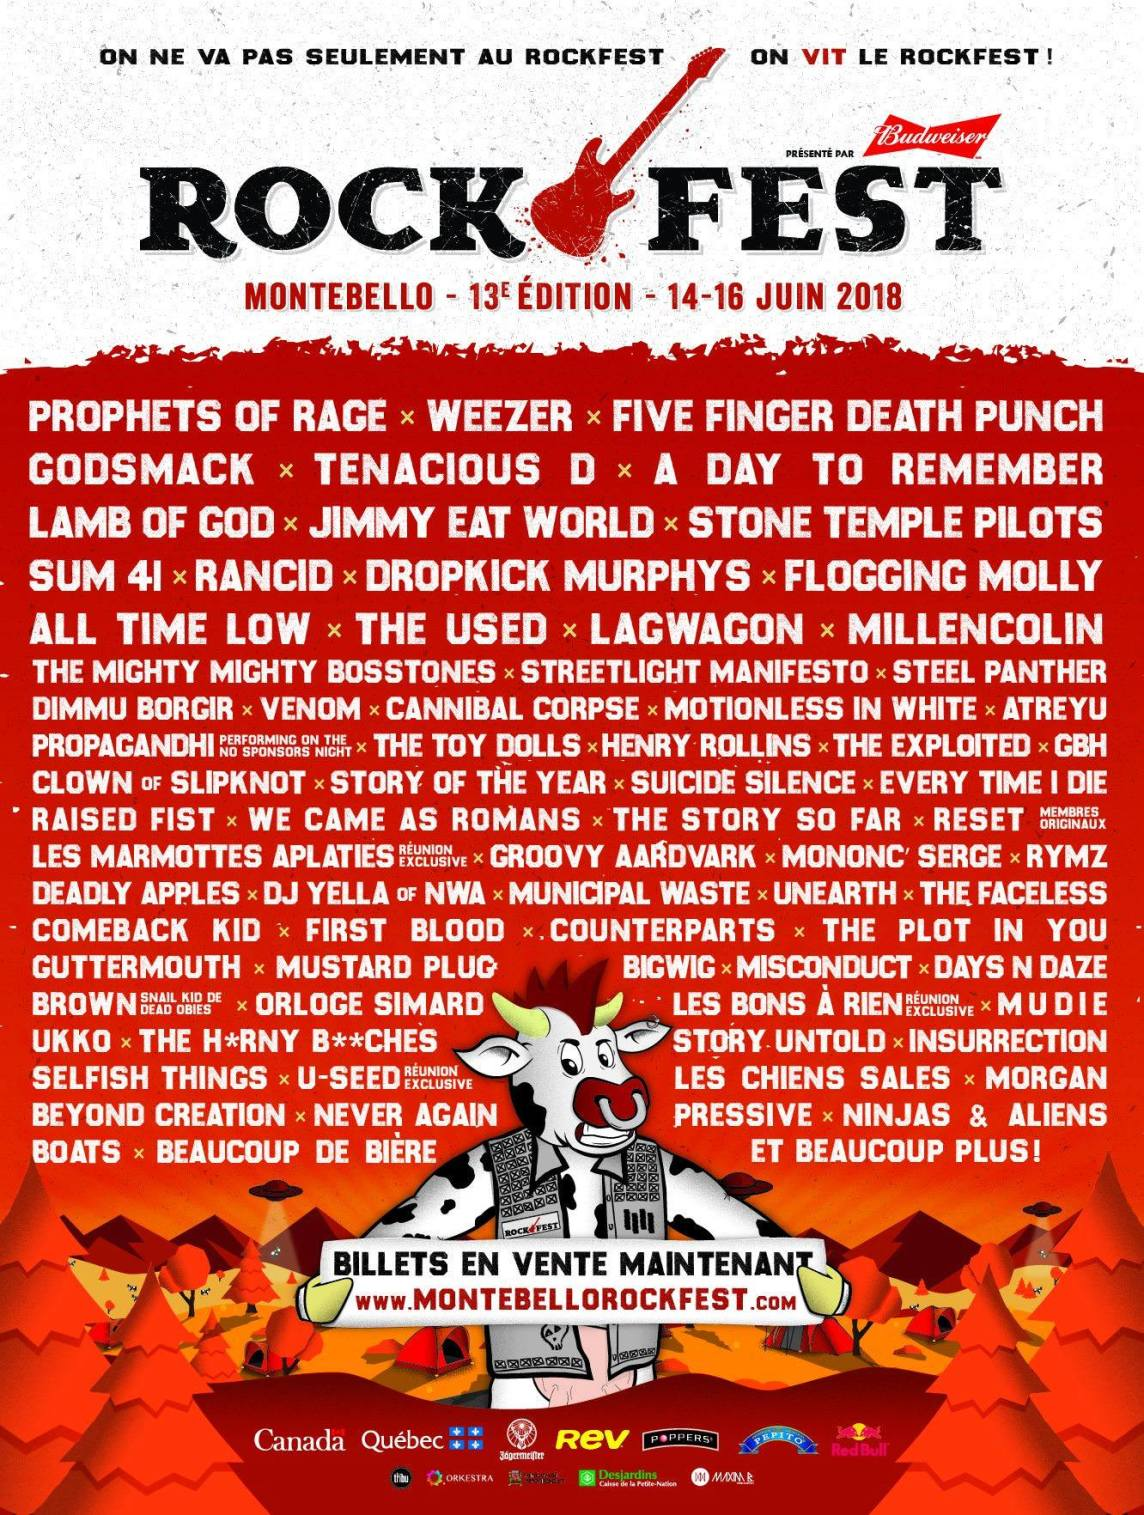 The 13th Edition Of Montebello Rockfest Full Lineup